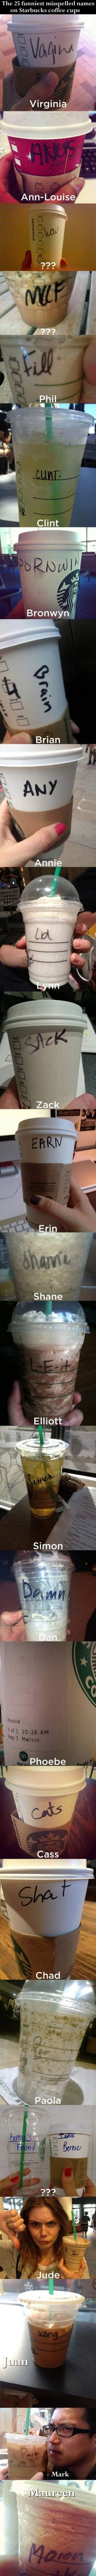 The 25 Funniest Misspelled Names On Starbucks Coffee Cups funny starbucks lol fail humor omg funny pictures wtf fails funny images